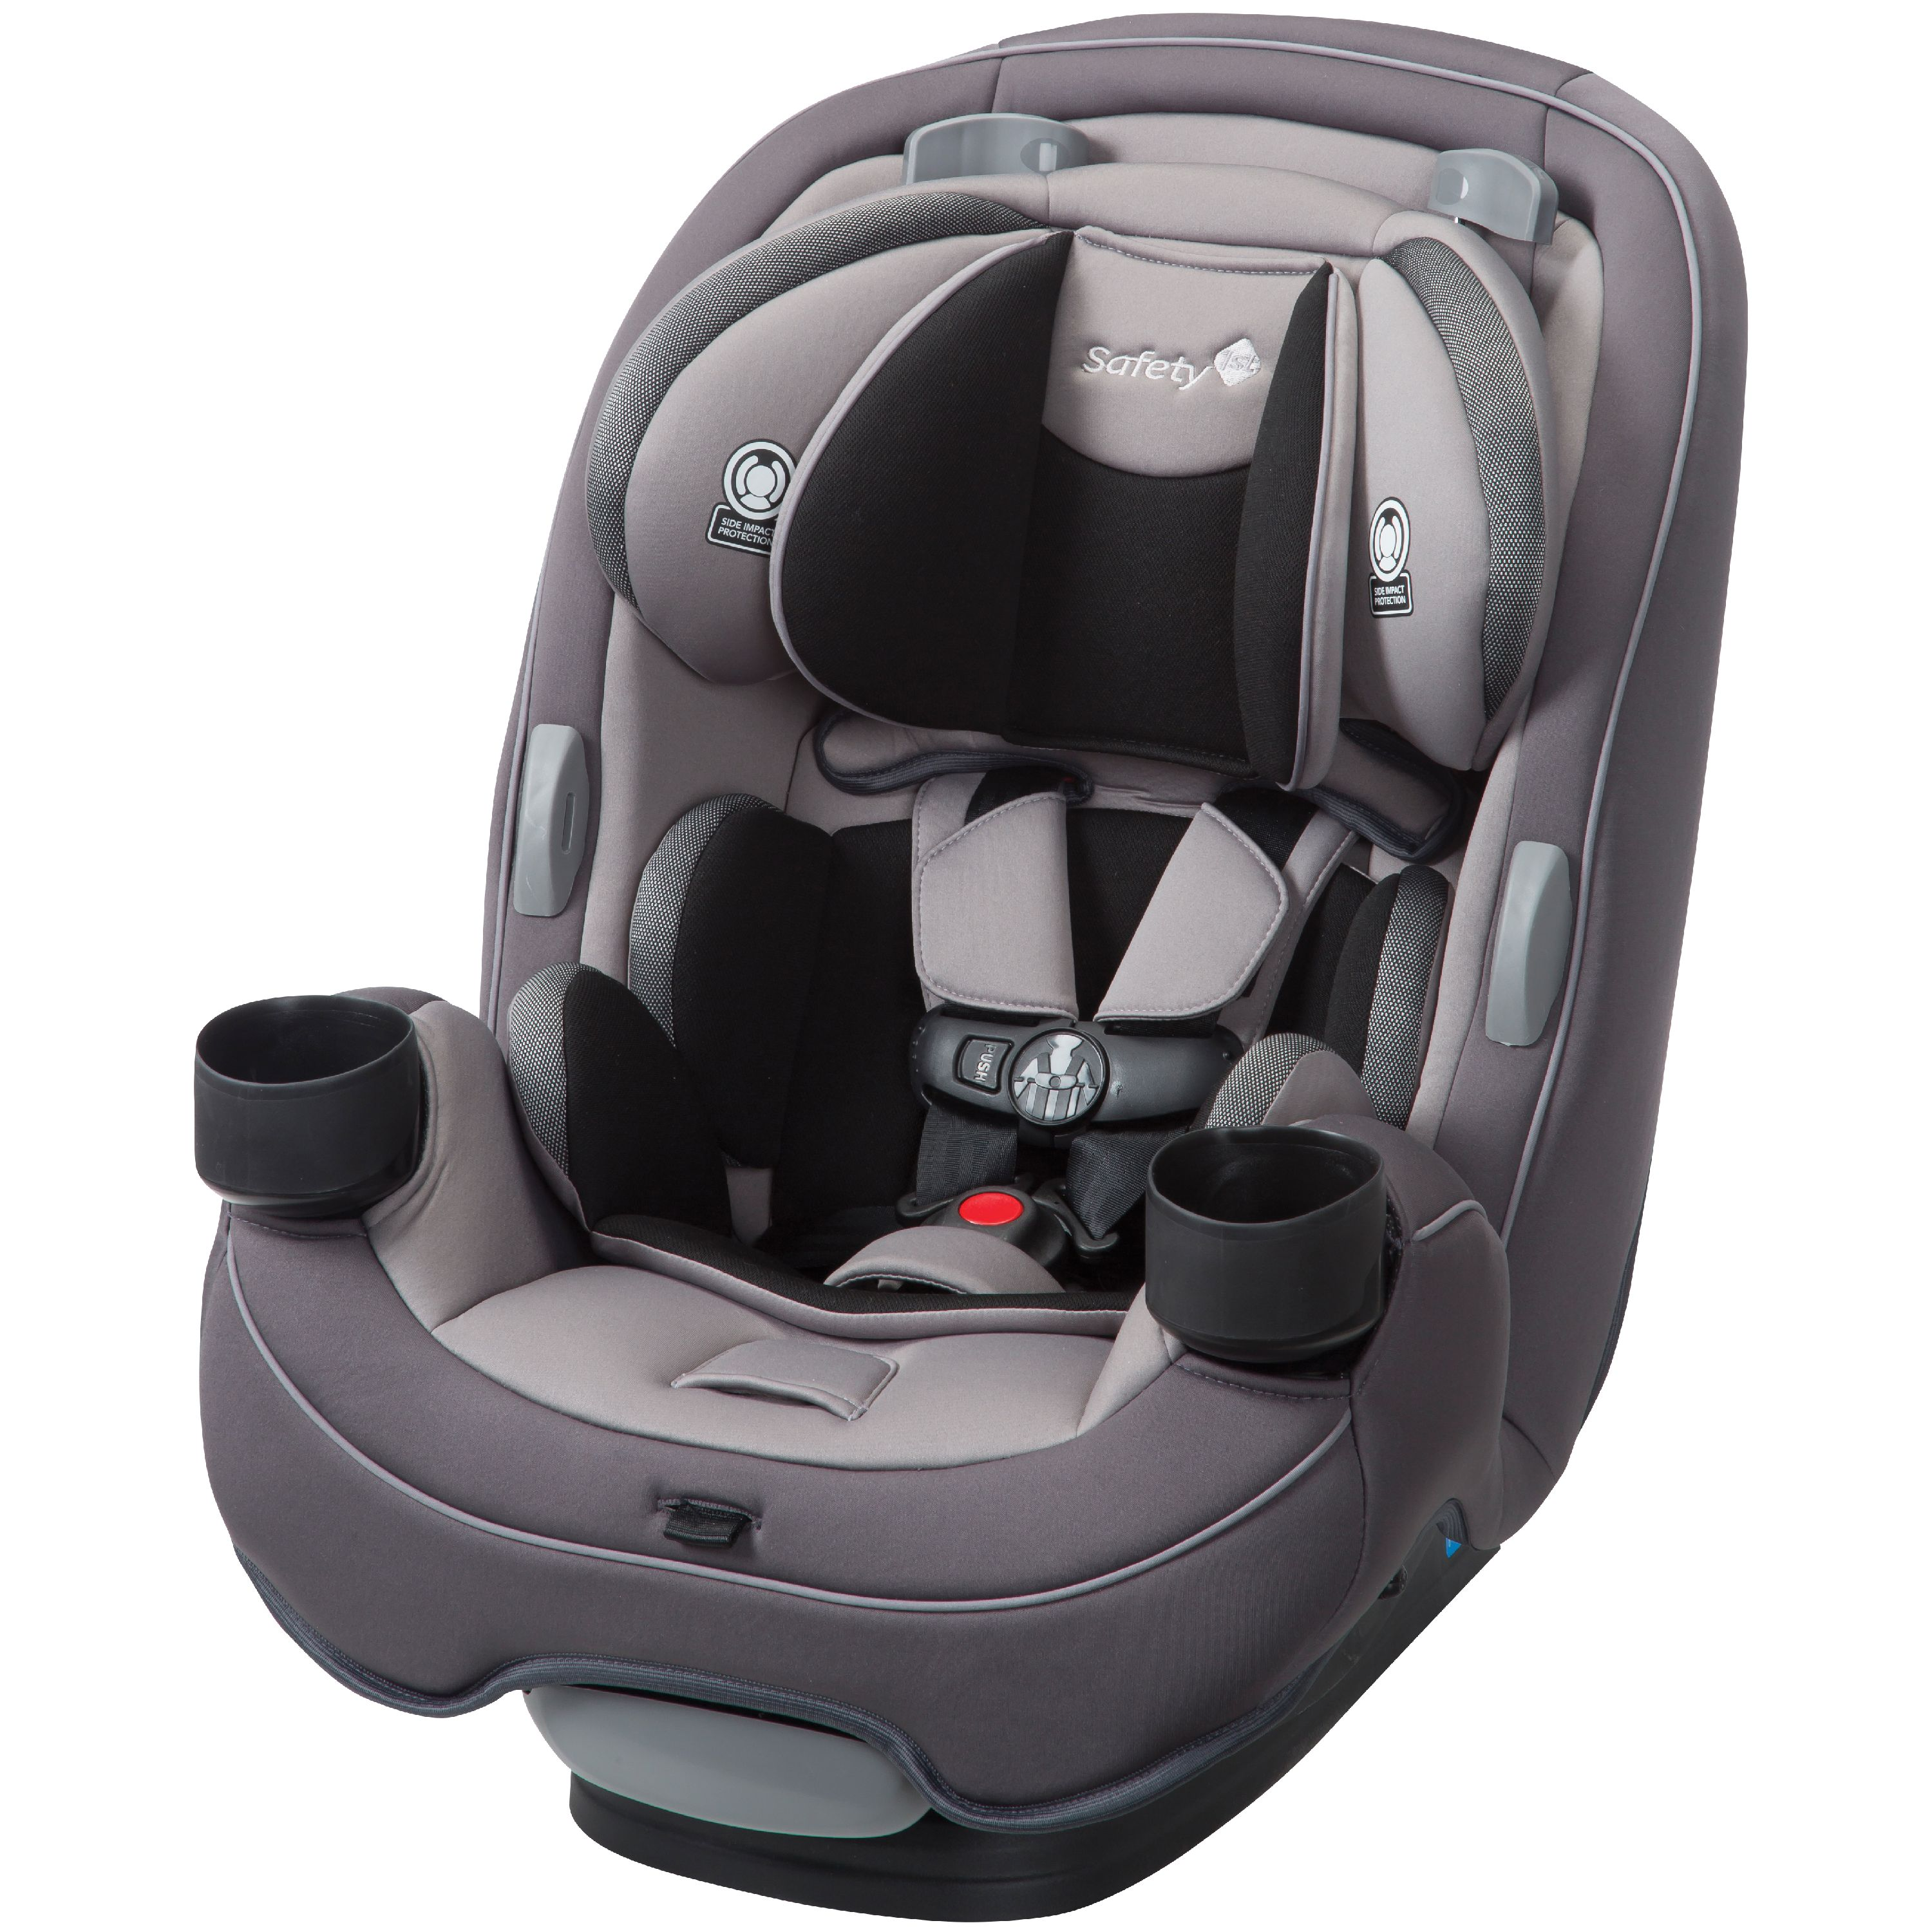 Safety 1st Grow And Go 3 In 1 Convertible Car Seat Blue Coral